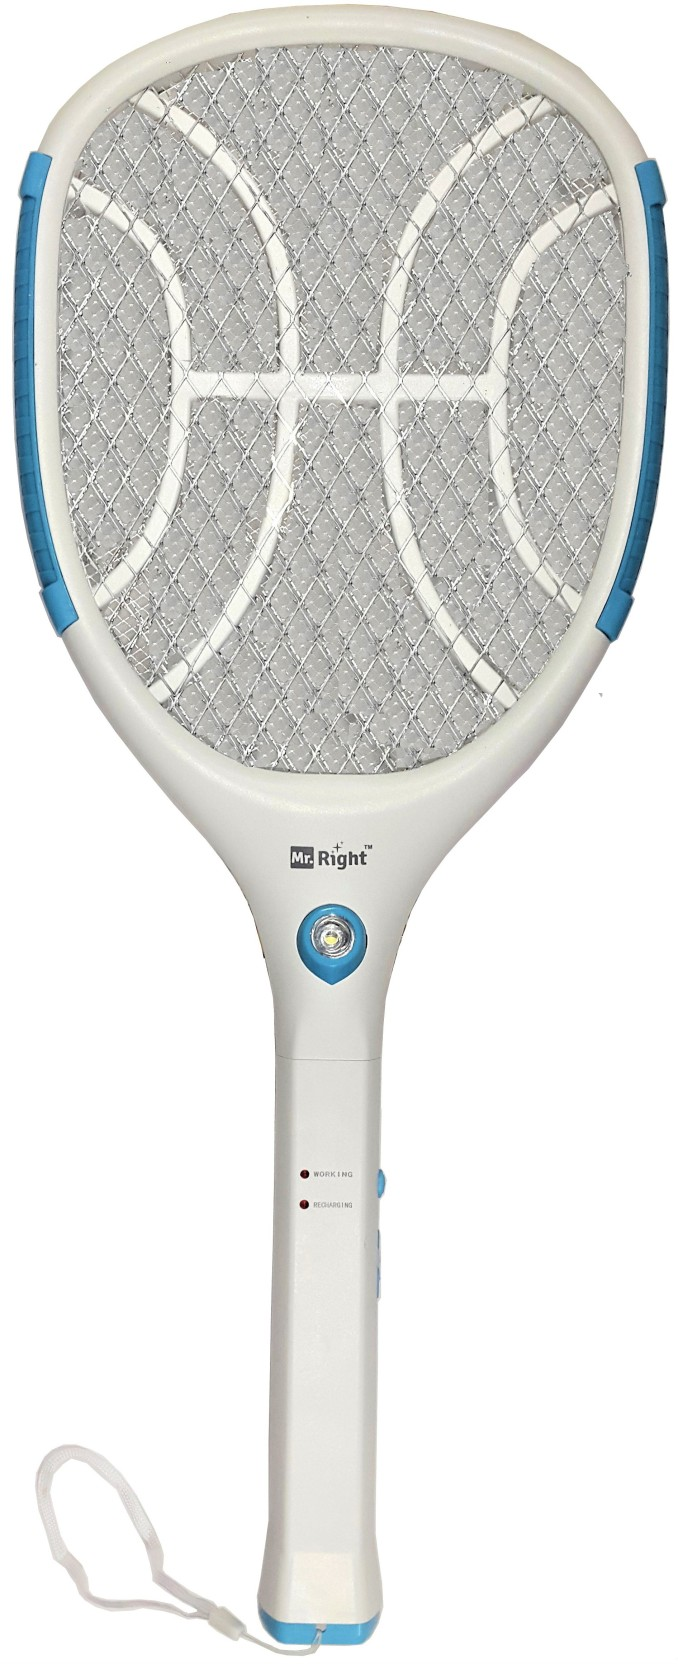 Mr Right 5620 Electric Mosquito Bat Insect Killer Price Swatter Electronics Hobby Add To Cart